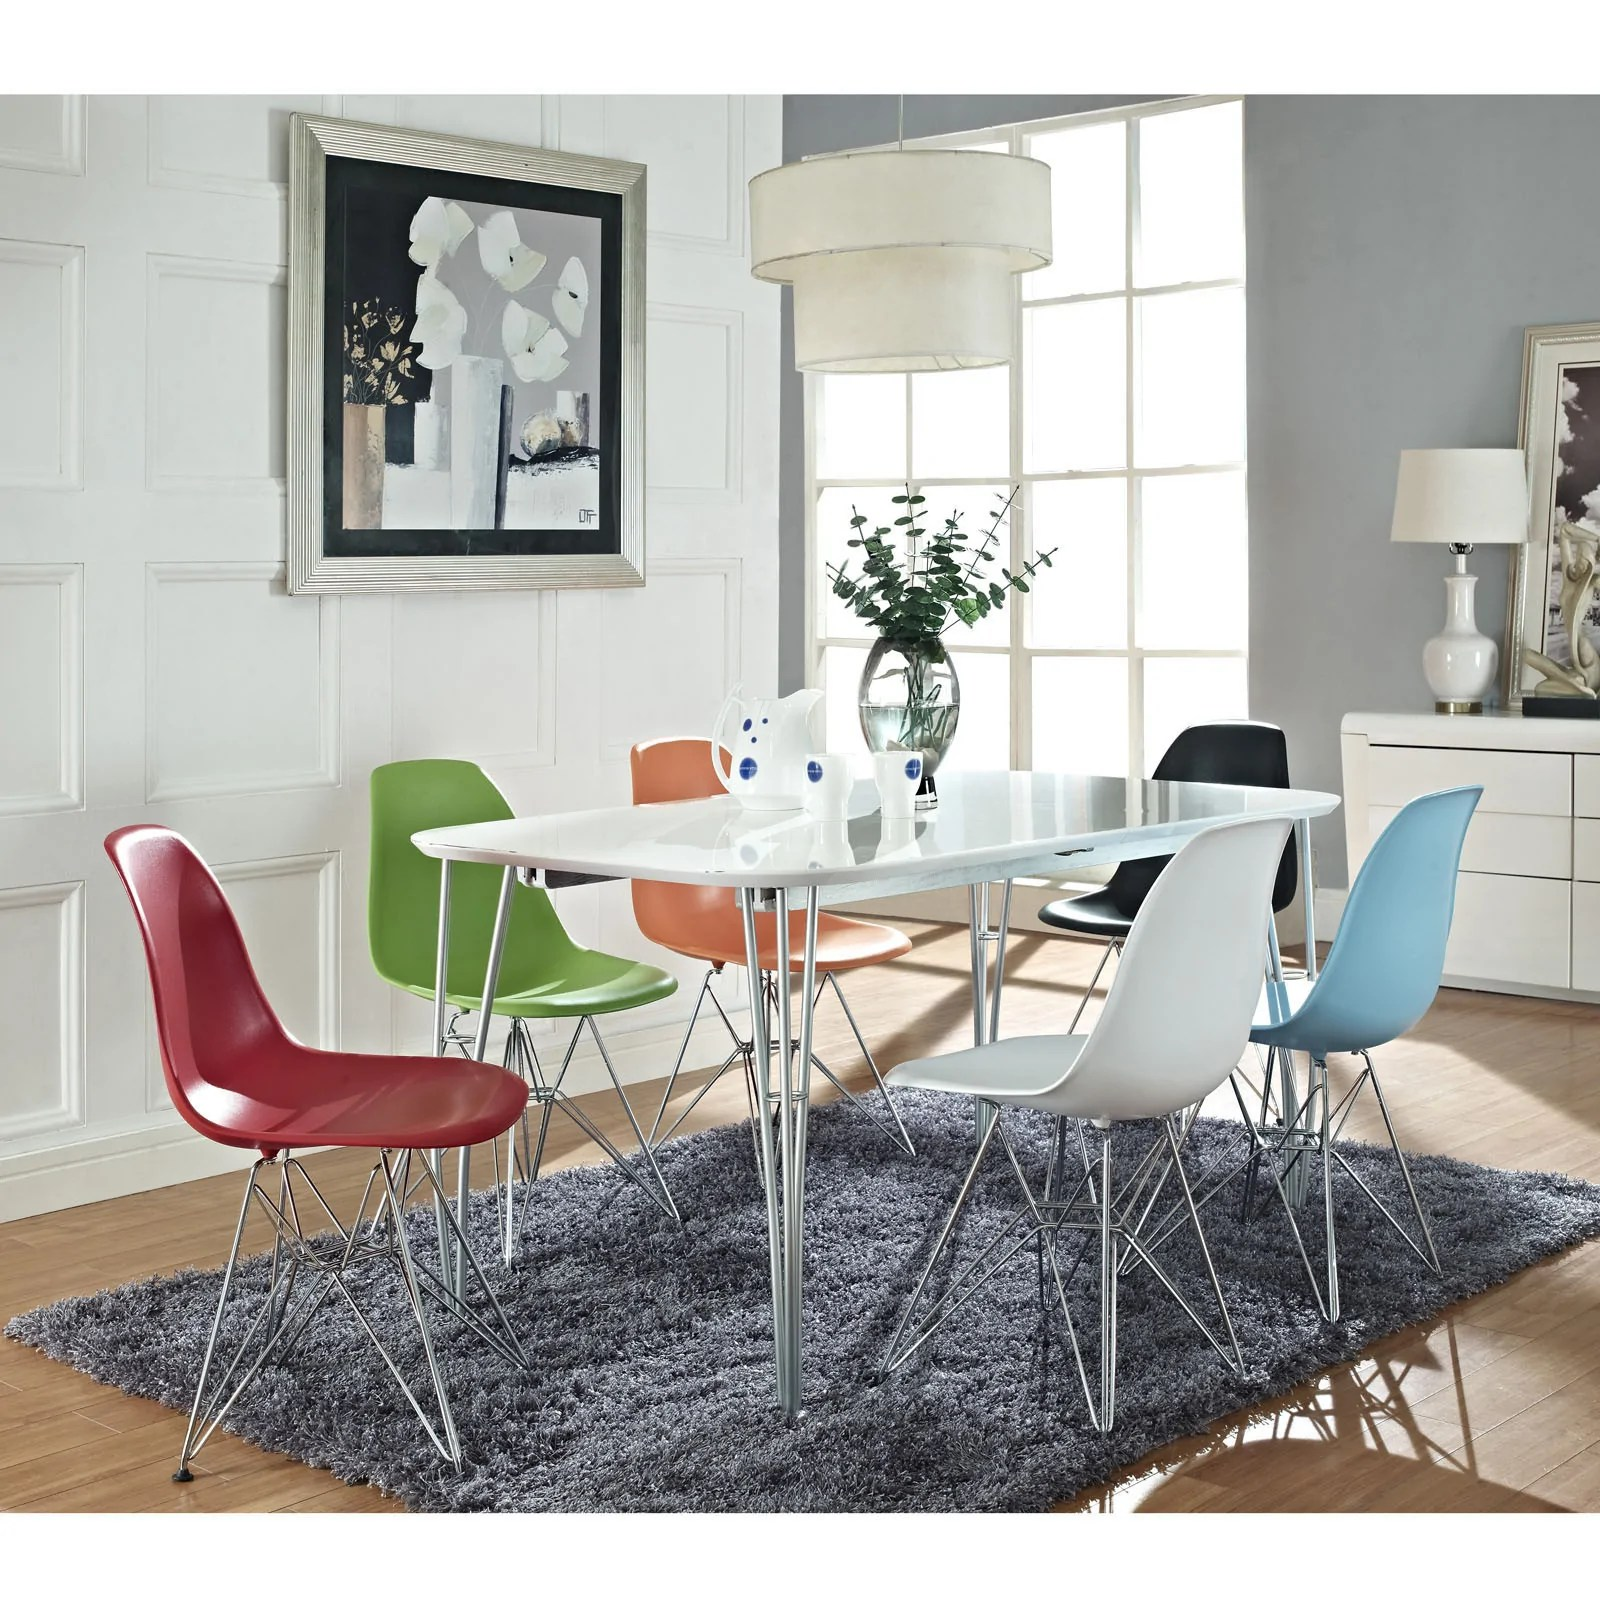 mid century modern dining chairs our top 5 mid century kitchen chairs Mid Century Modern Dining chairs Our Top 5